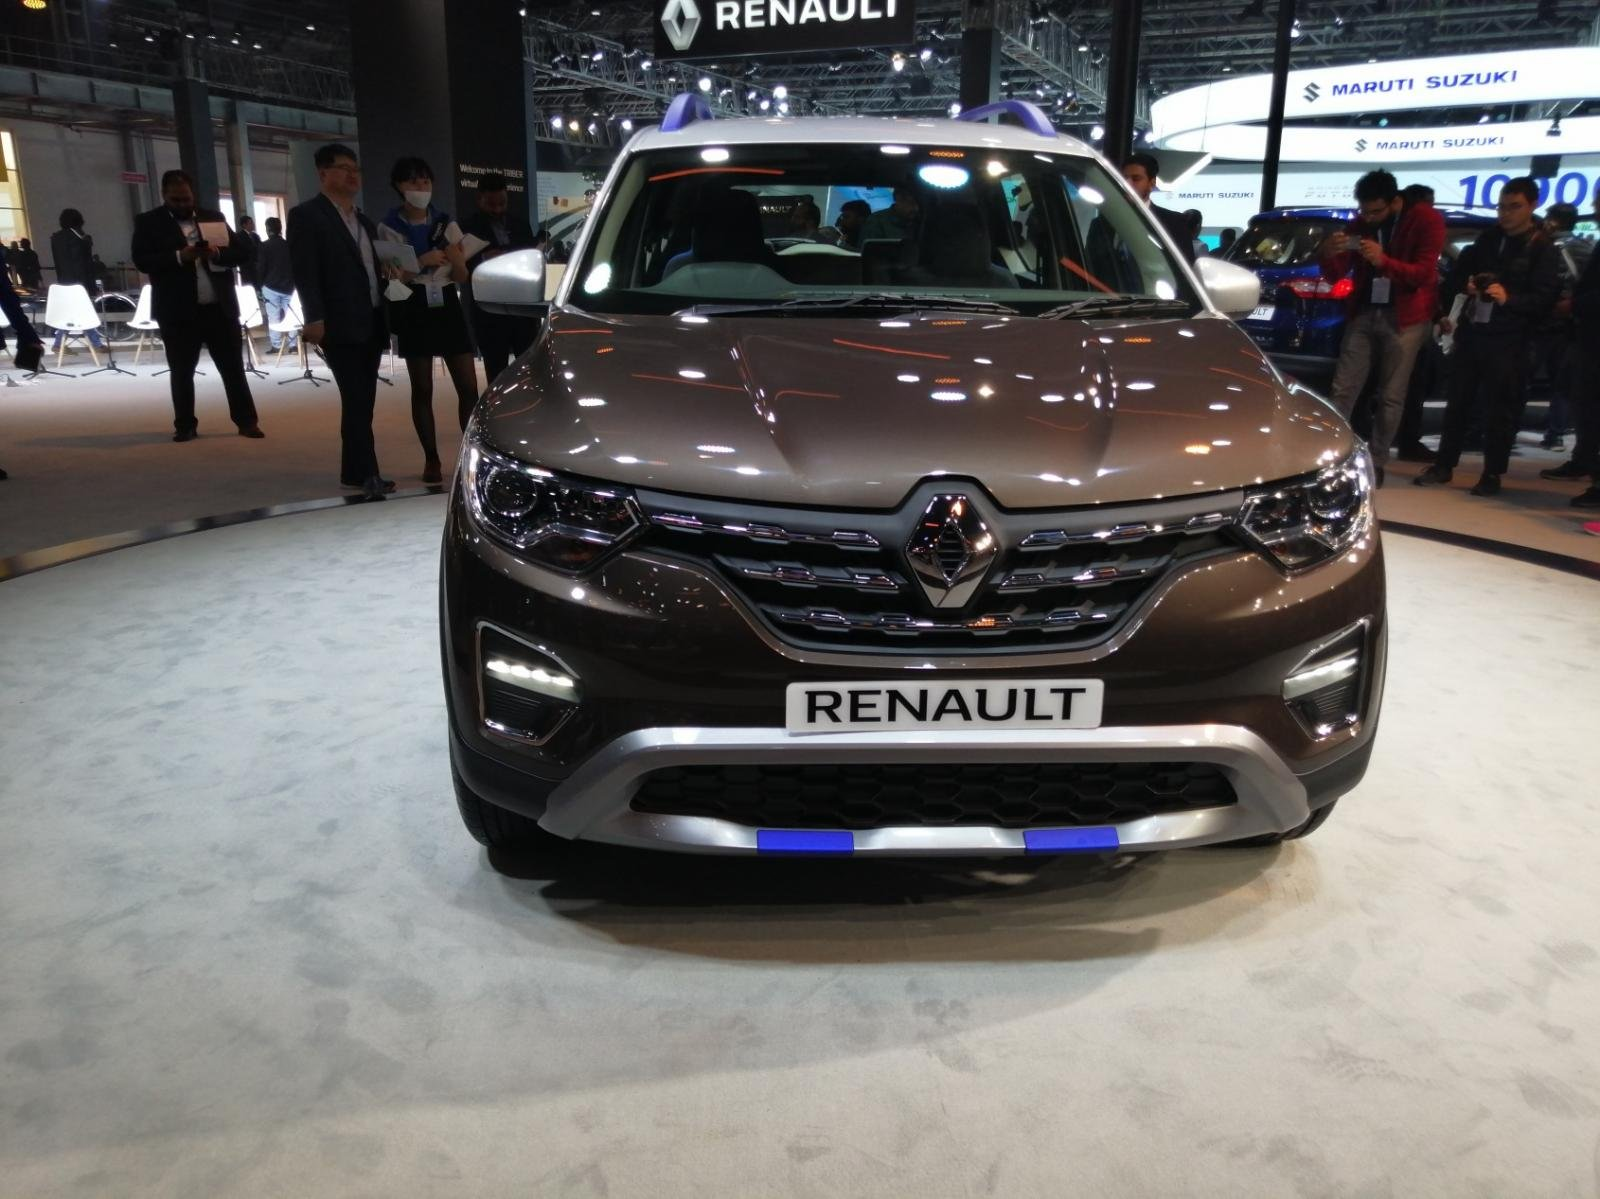 Renault Triber unveiled at Auto Expo 2020